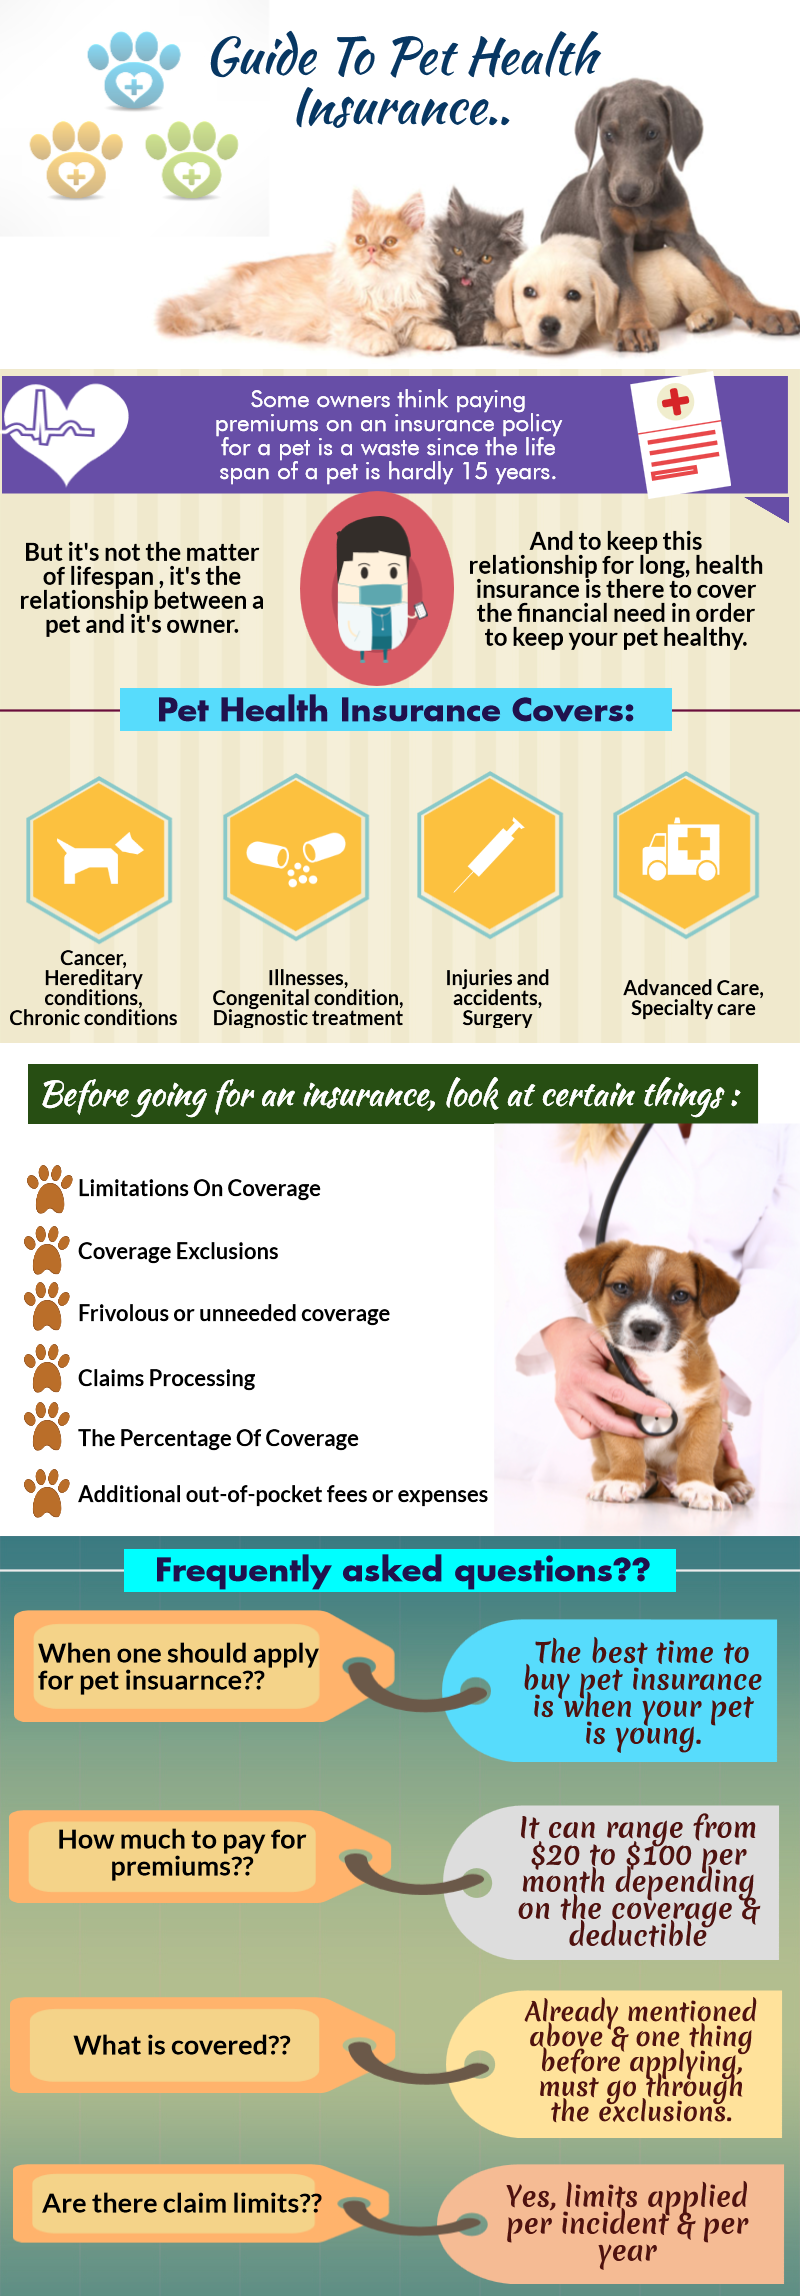 Guide To Pet Health Insurance